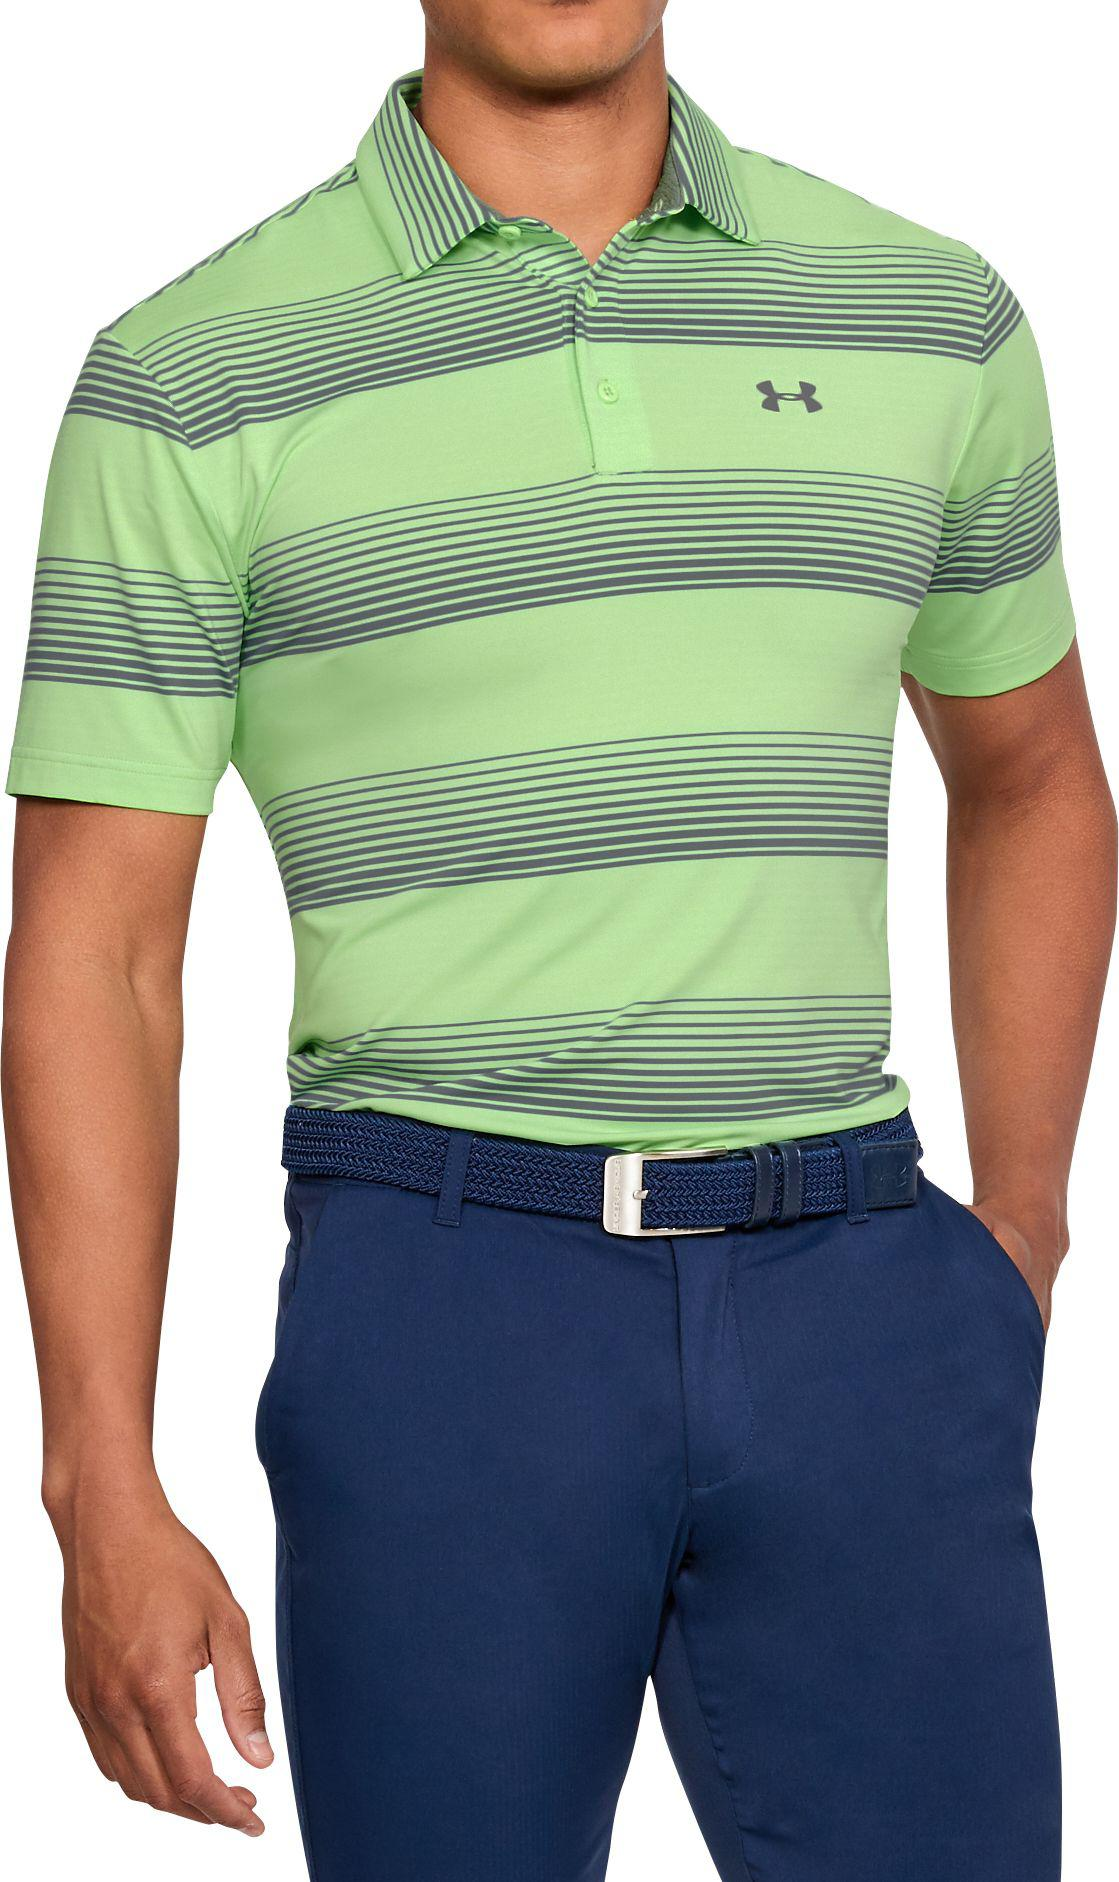 bd4f915e5e Lyst - Under Armour Playoff Blast Stripe Golf Polo in Green for Men